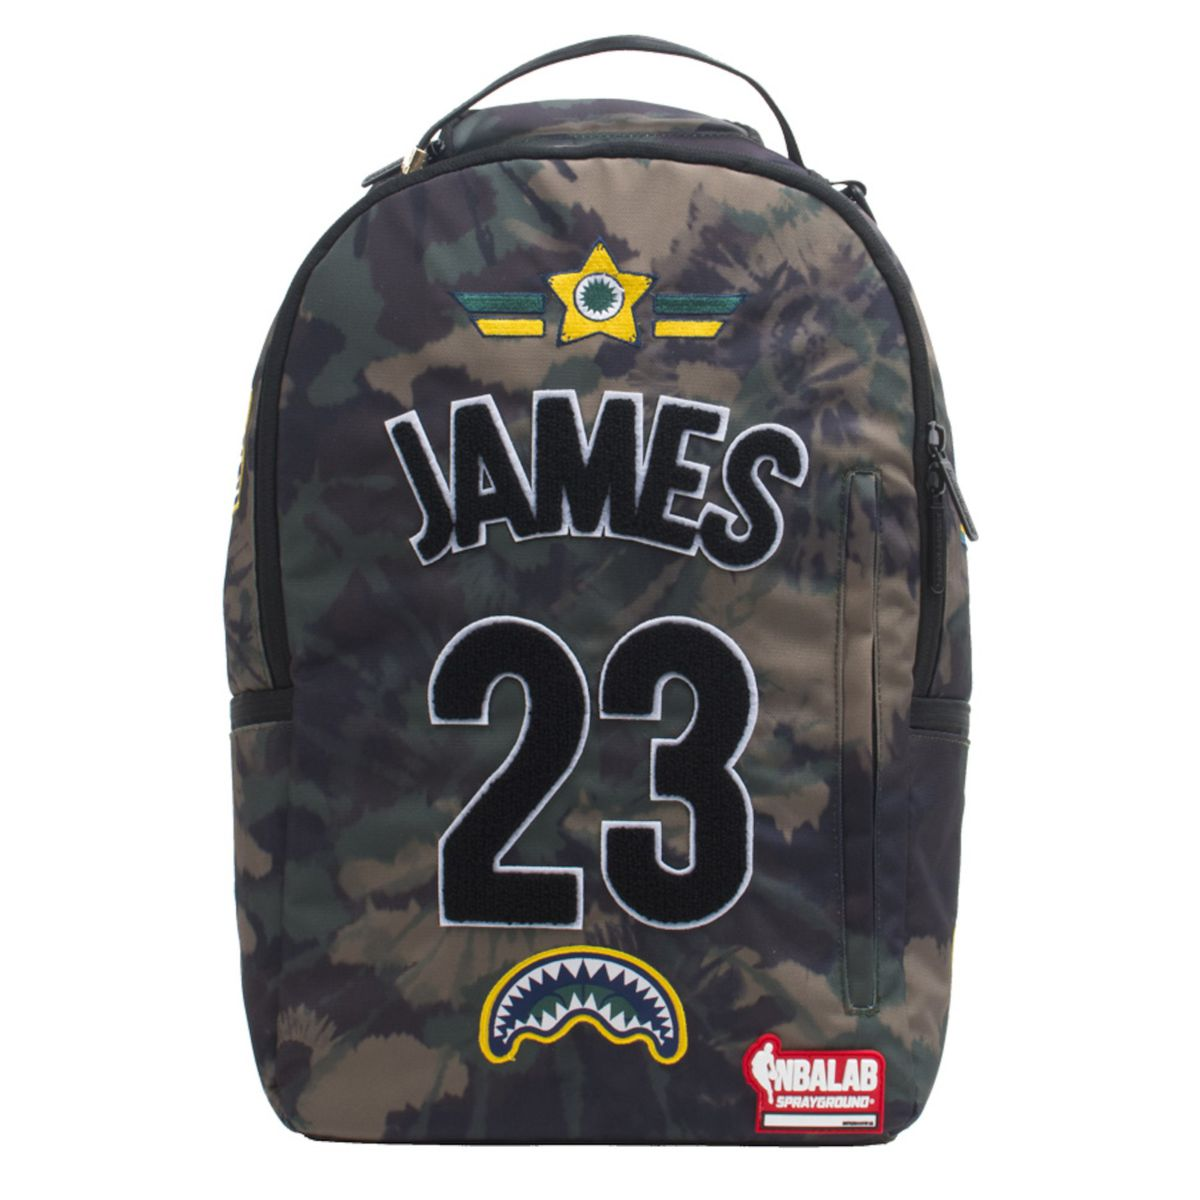 LeBron James Sprayground Tie Dye Patches Backpack for  56.25 (usually  75)  NBA Store fe55fdf099